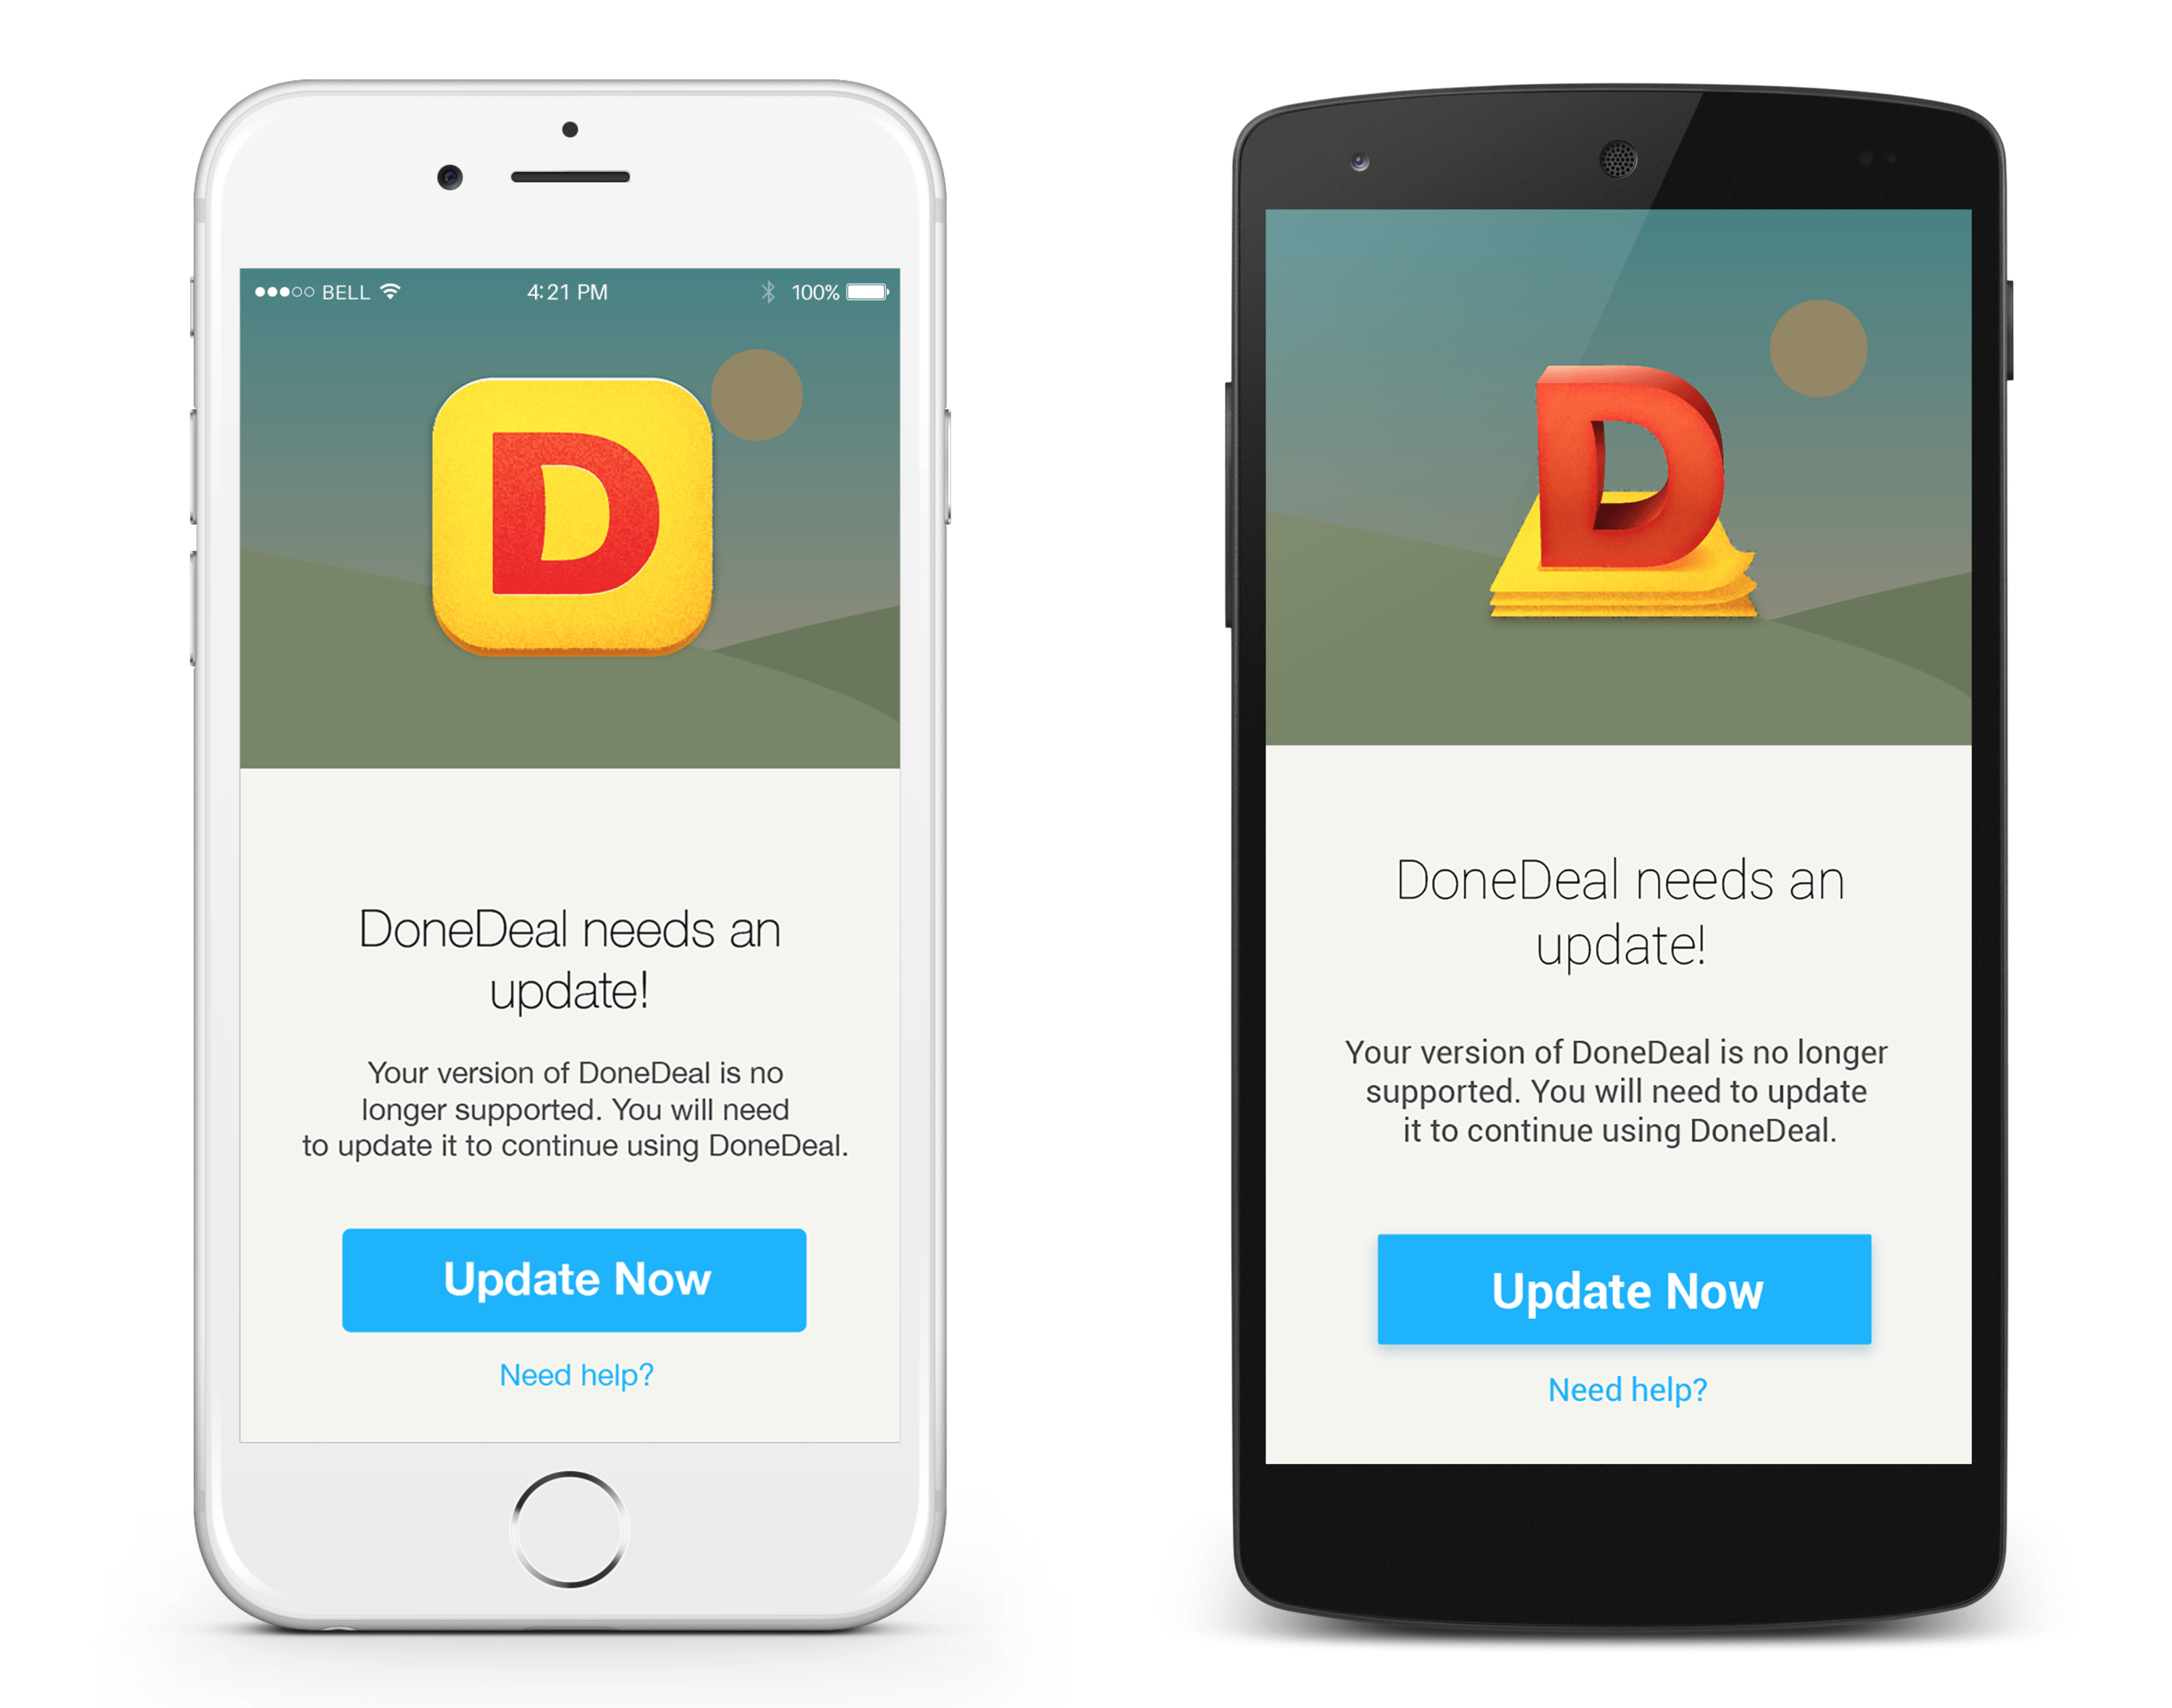 update to the latest donedeal app